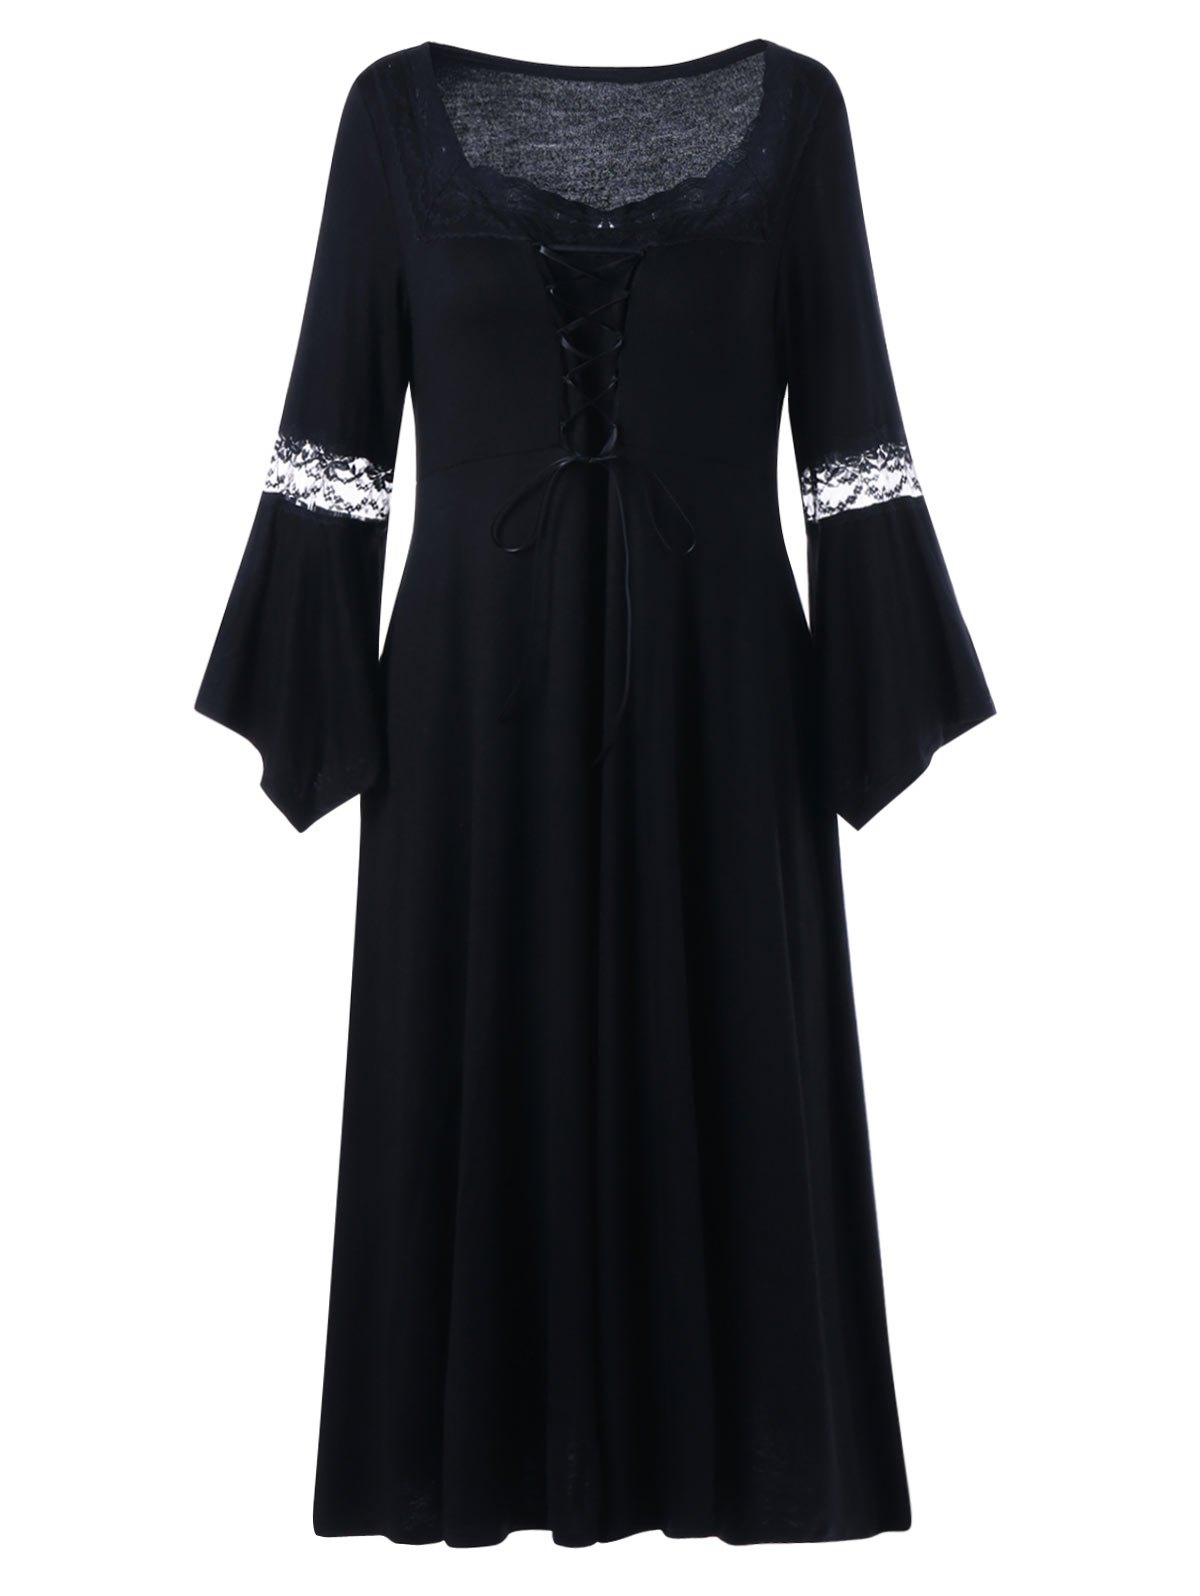 Plus Size Lace Up Bell Sleeve Dress - BLACK XL